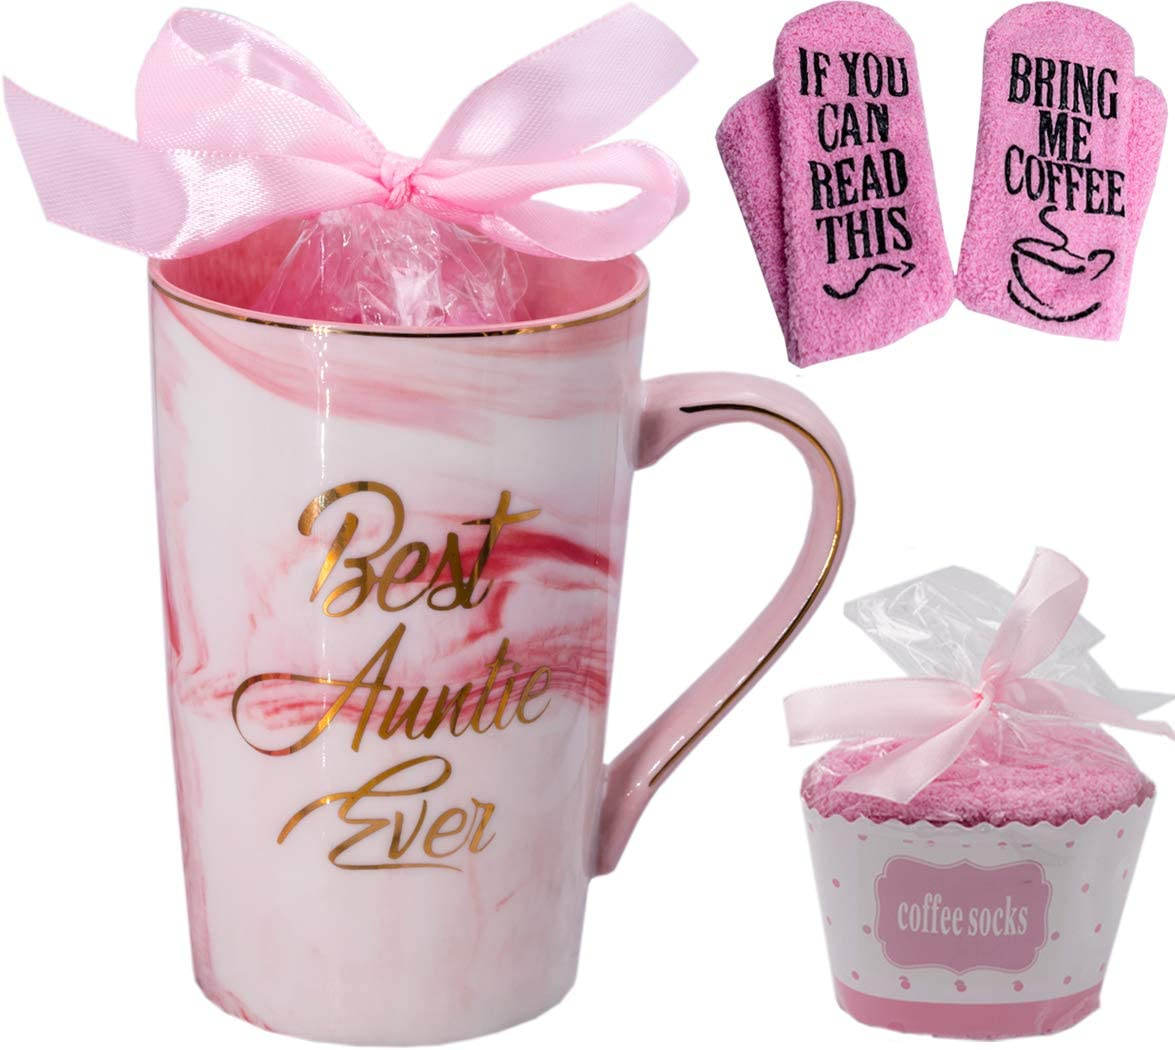 Mugpie Aunt Gifts from Niece Nephew BAE Gifts Best Auntie Ever Coffee Mug - Novelty Birthday Gifts Christmas Presents for Aunt - Cool 12.5oz Mug + Novelty Socks If You Can Read This,Bring Me Coffee